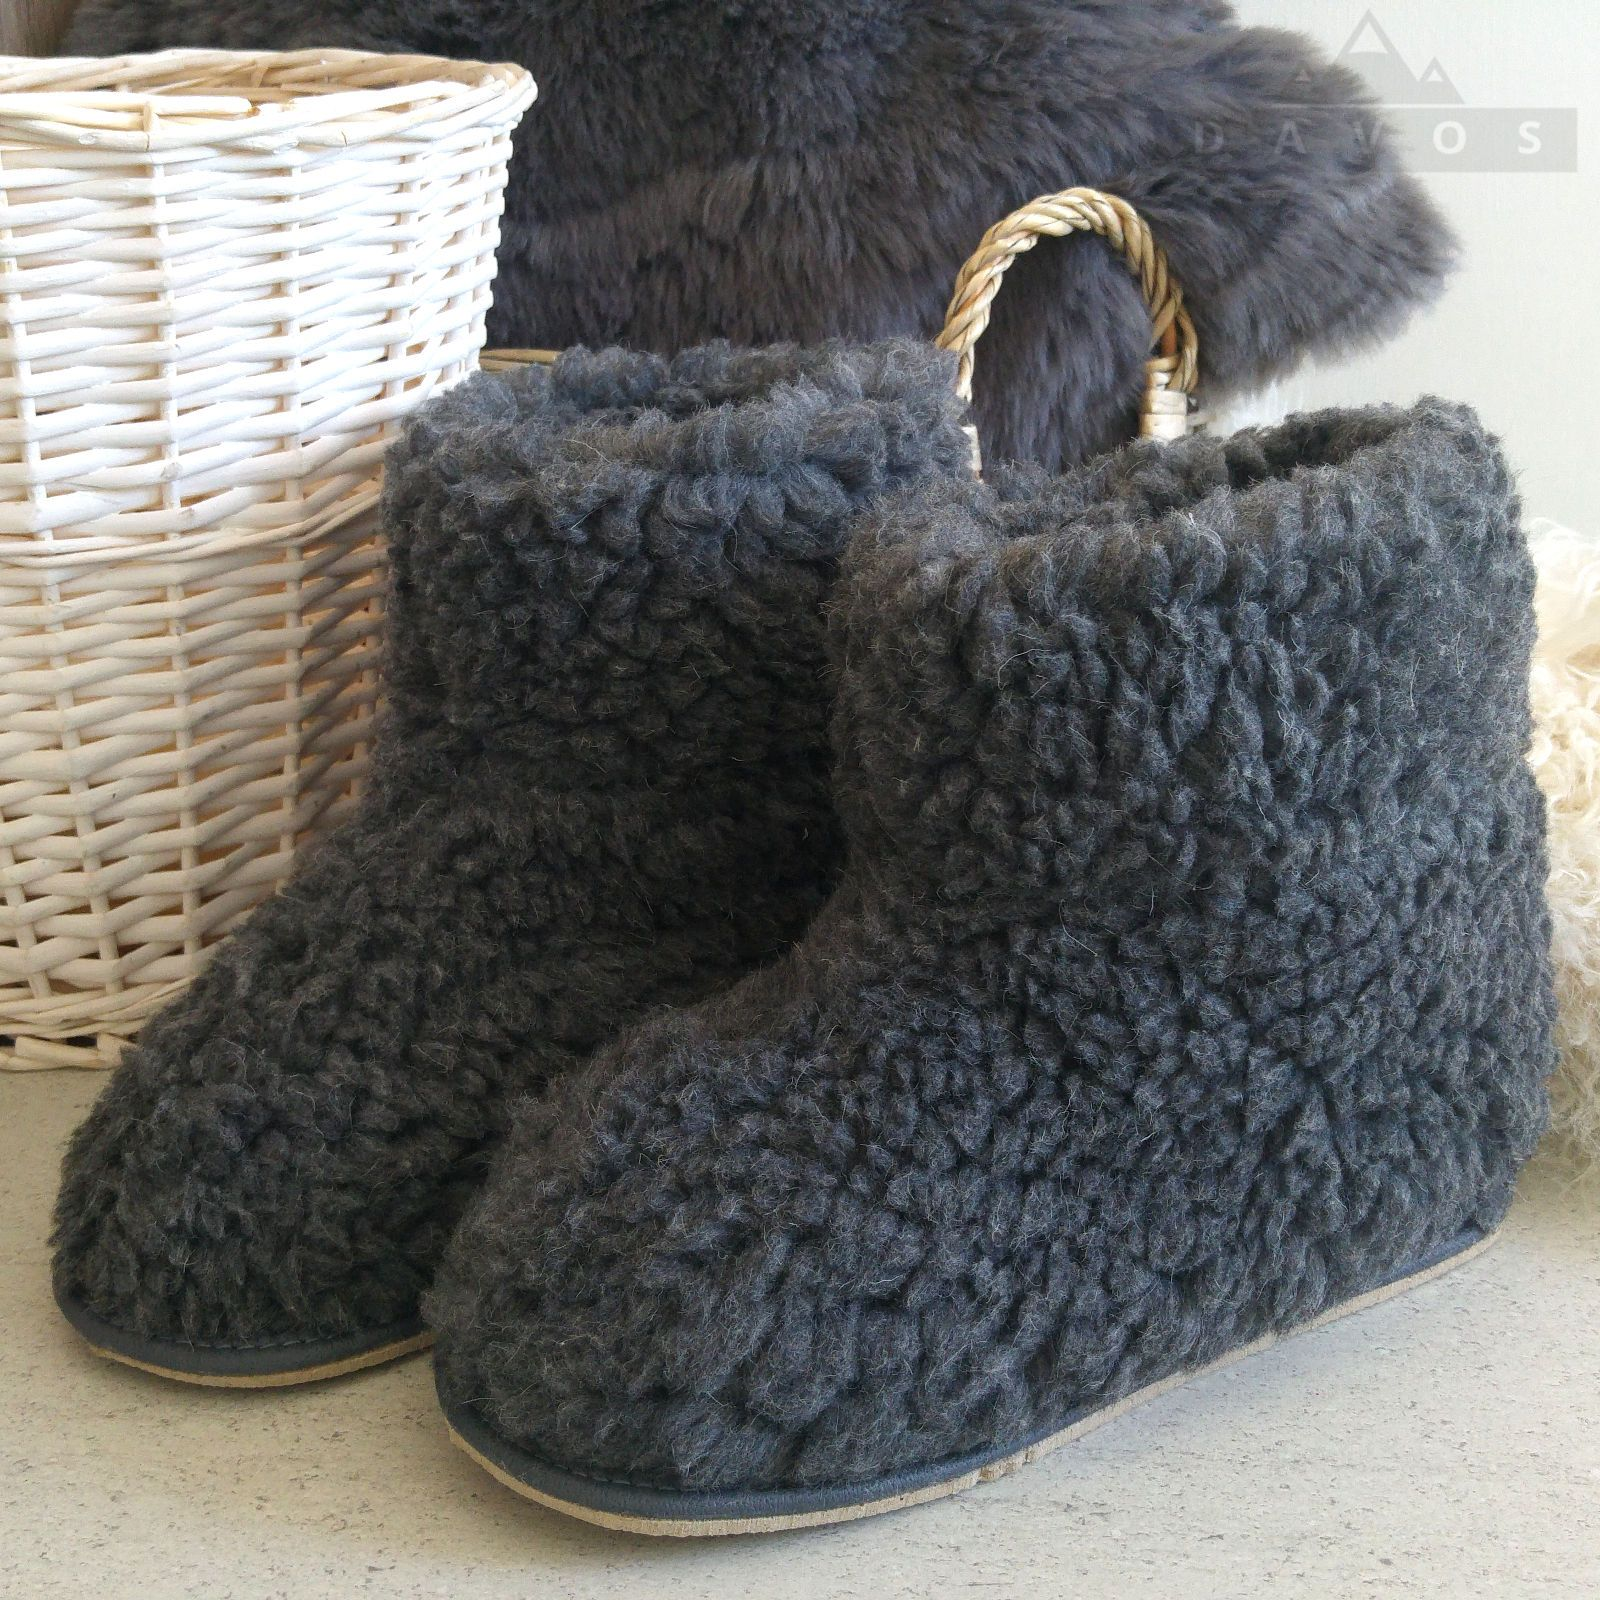 New  Women/'s Men/'s Grey Natural Sheep Wool Snug Slippers Hard Rubber Sole Boots